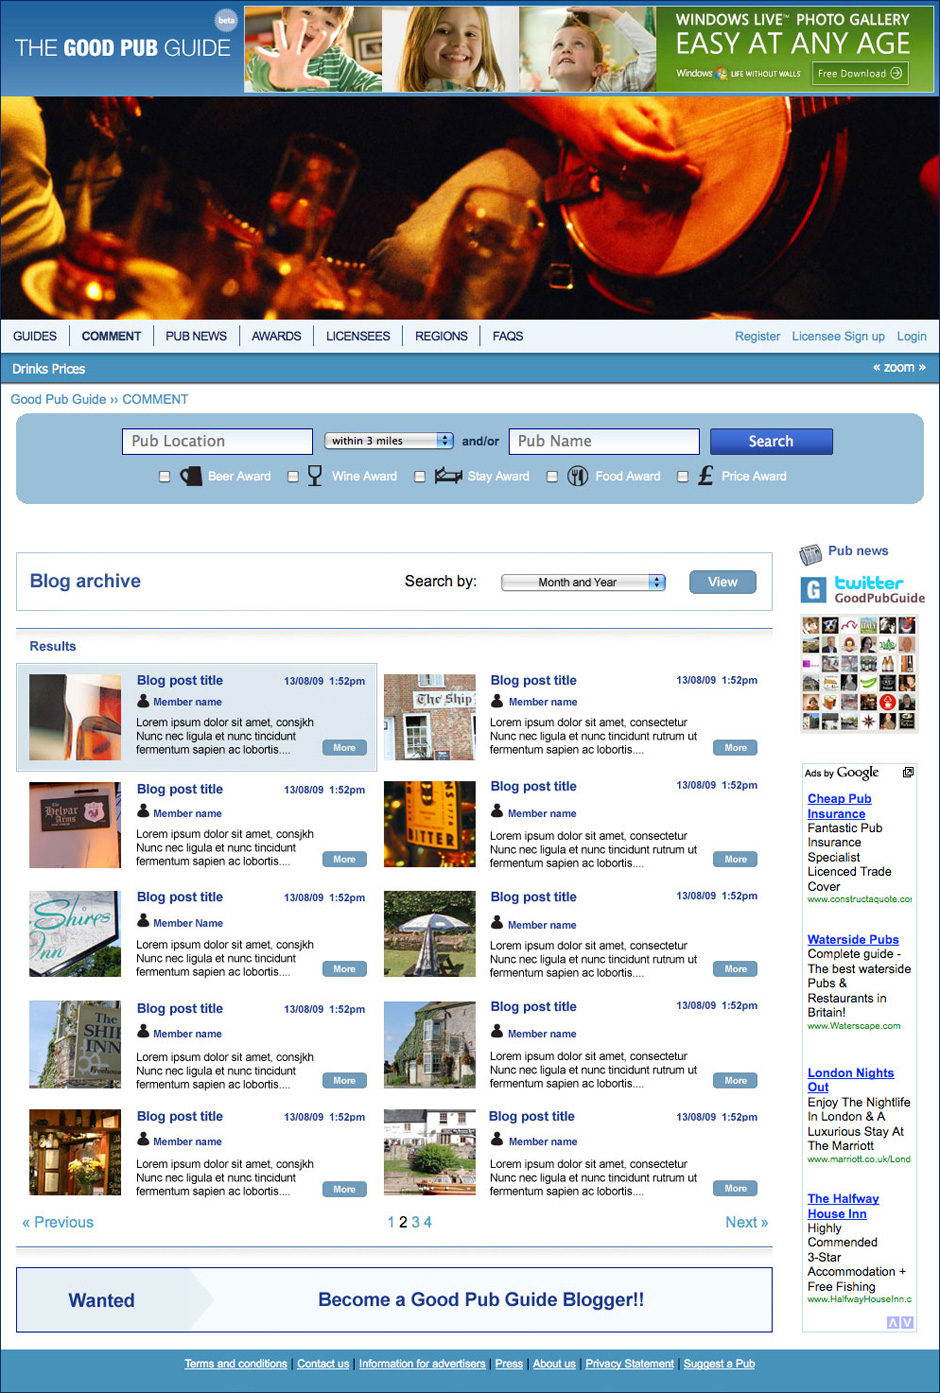 Good Pub Guide Blog Archive Page Visual